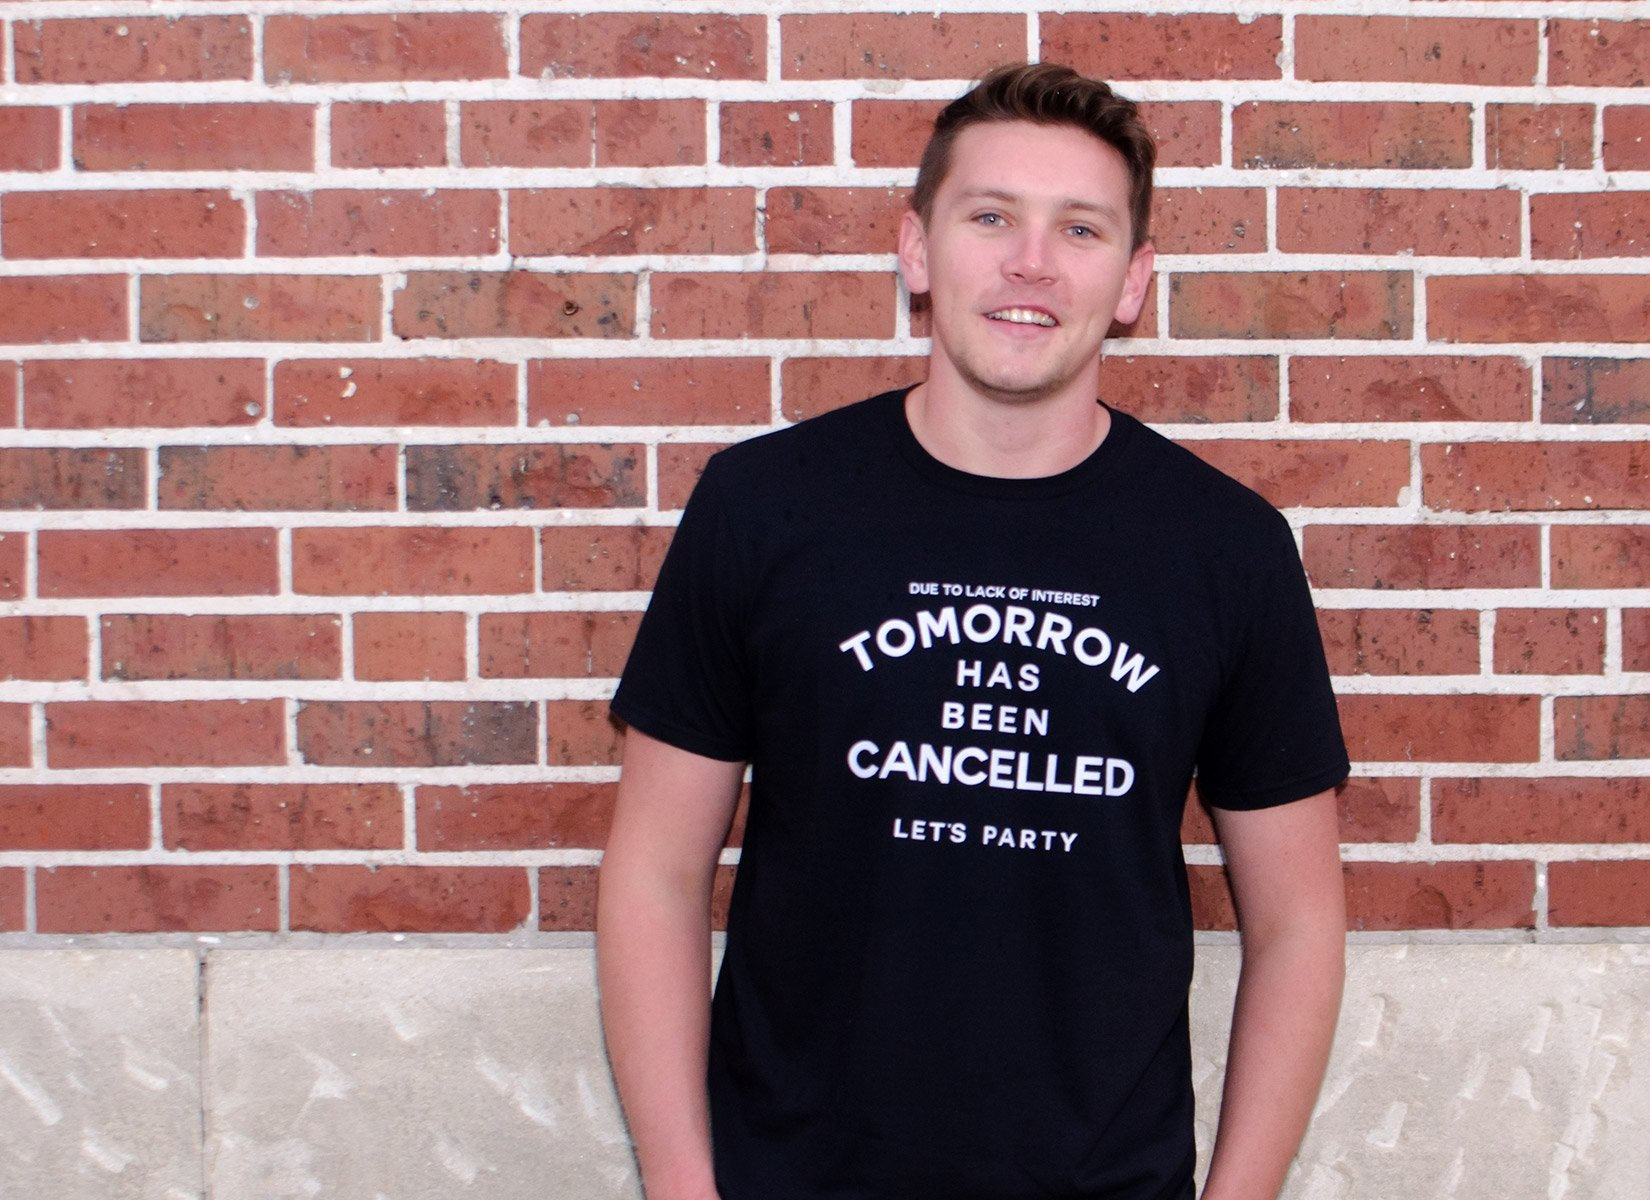 Tomorrow Has Been Cancelled on Mens T-Shirt